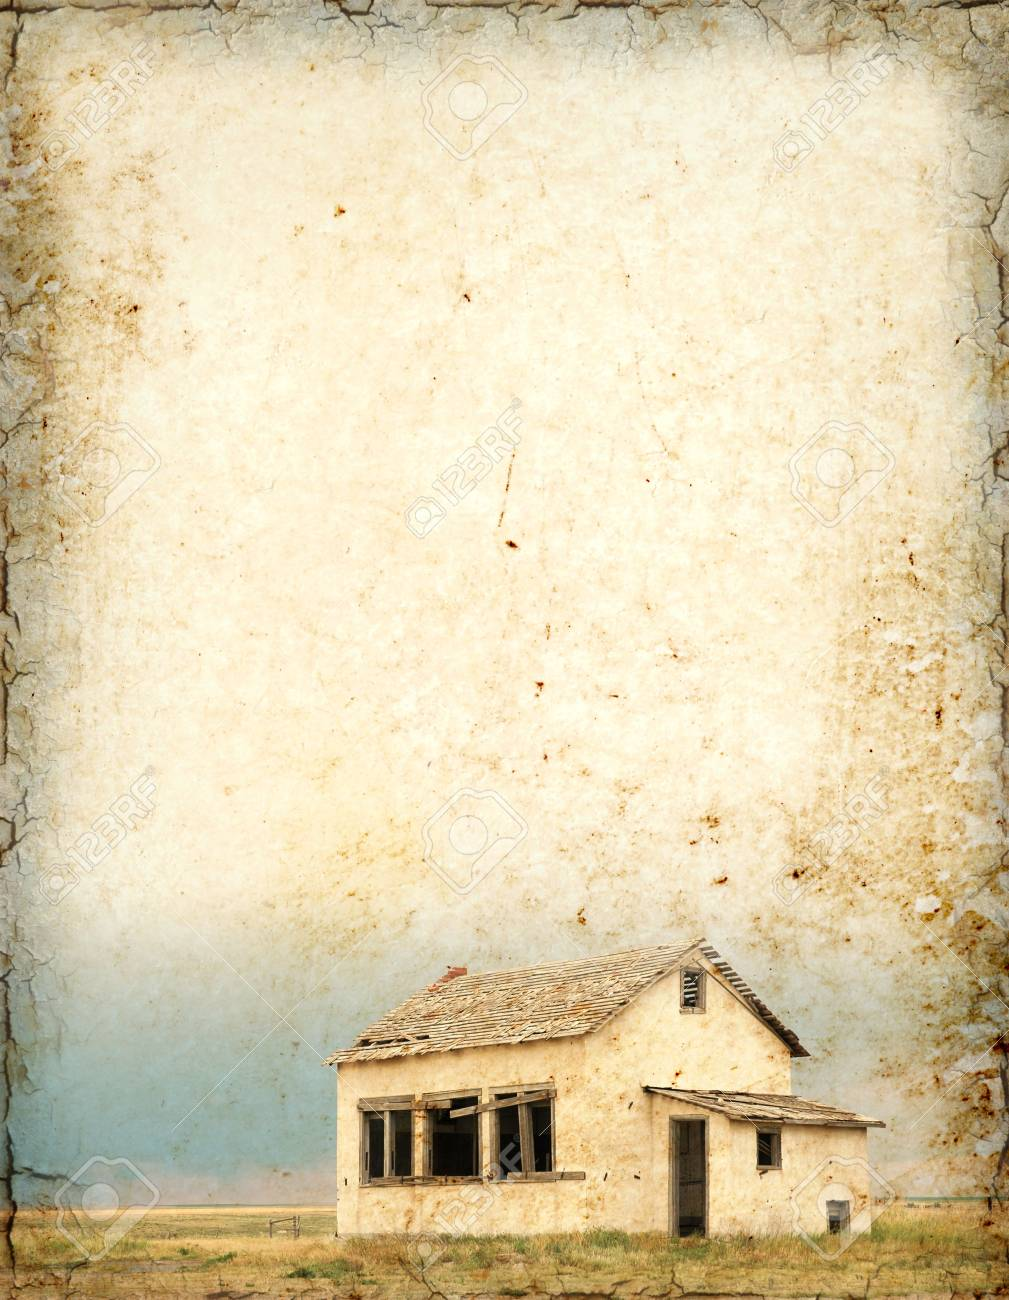 Grungy background with old house and plenty of room for text. Stock Photo - 3775137